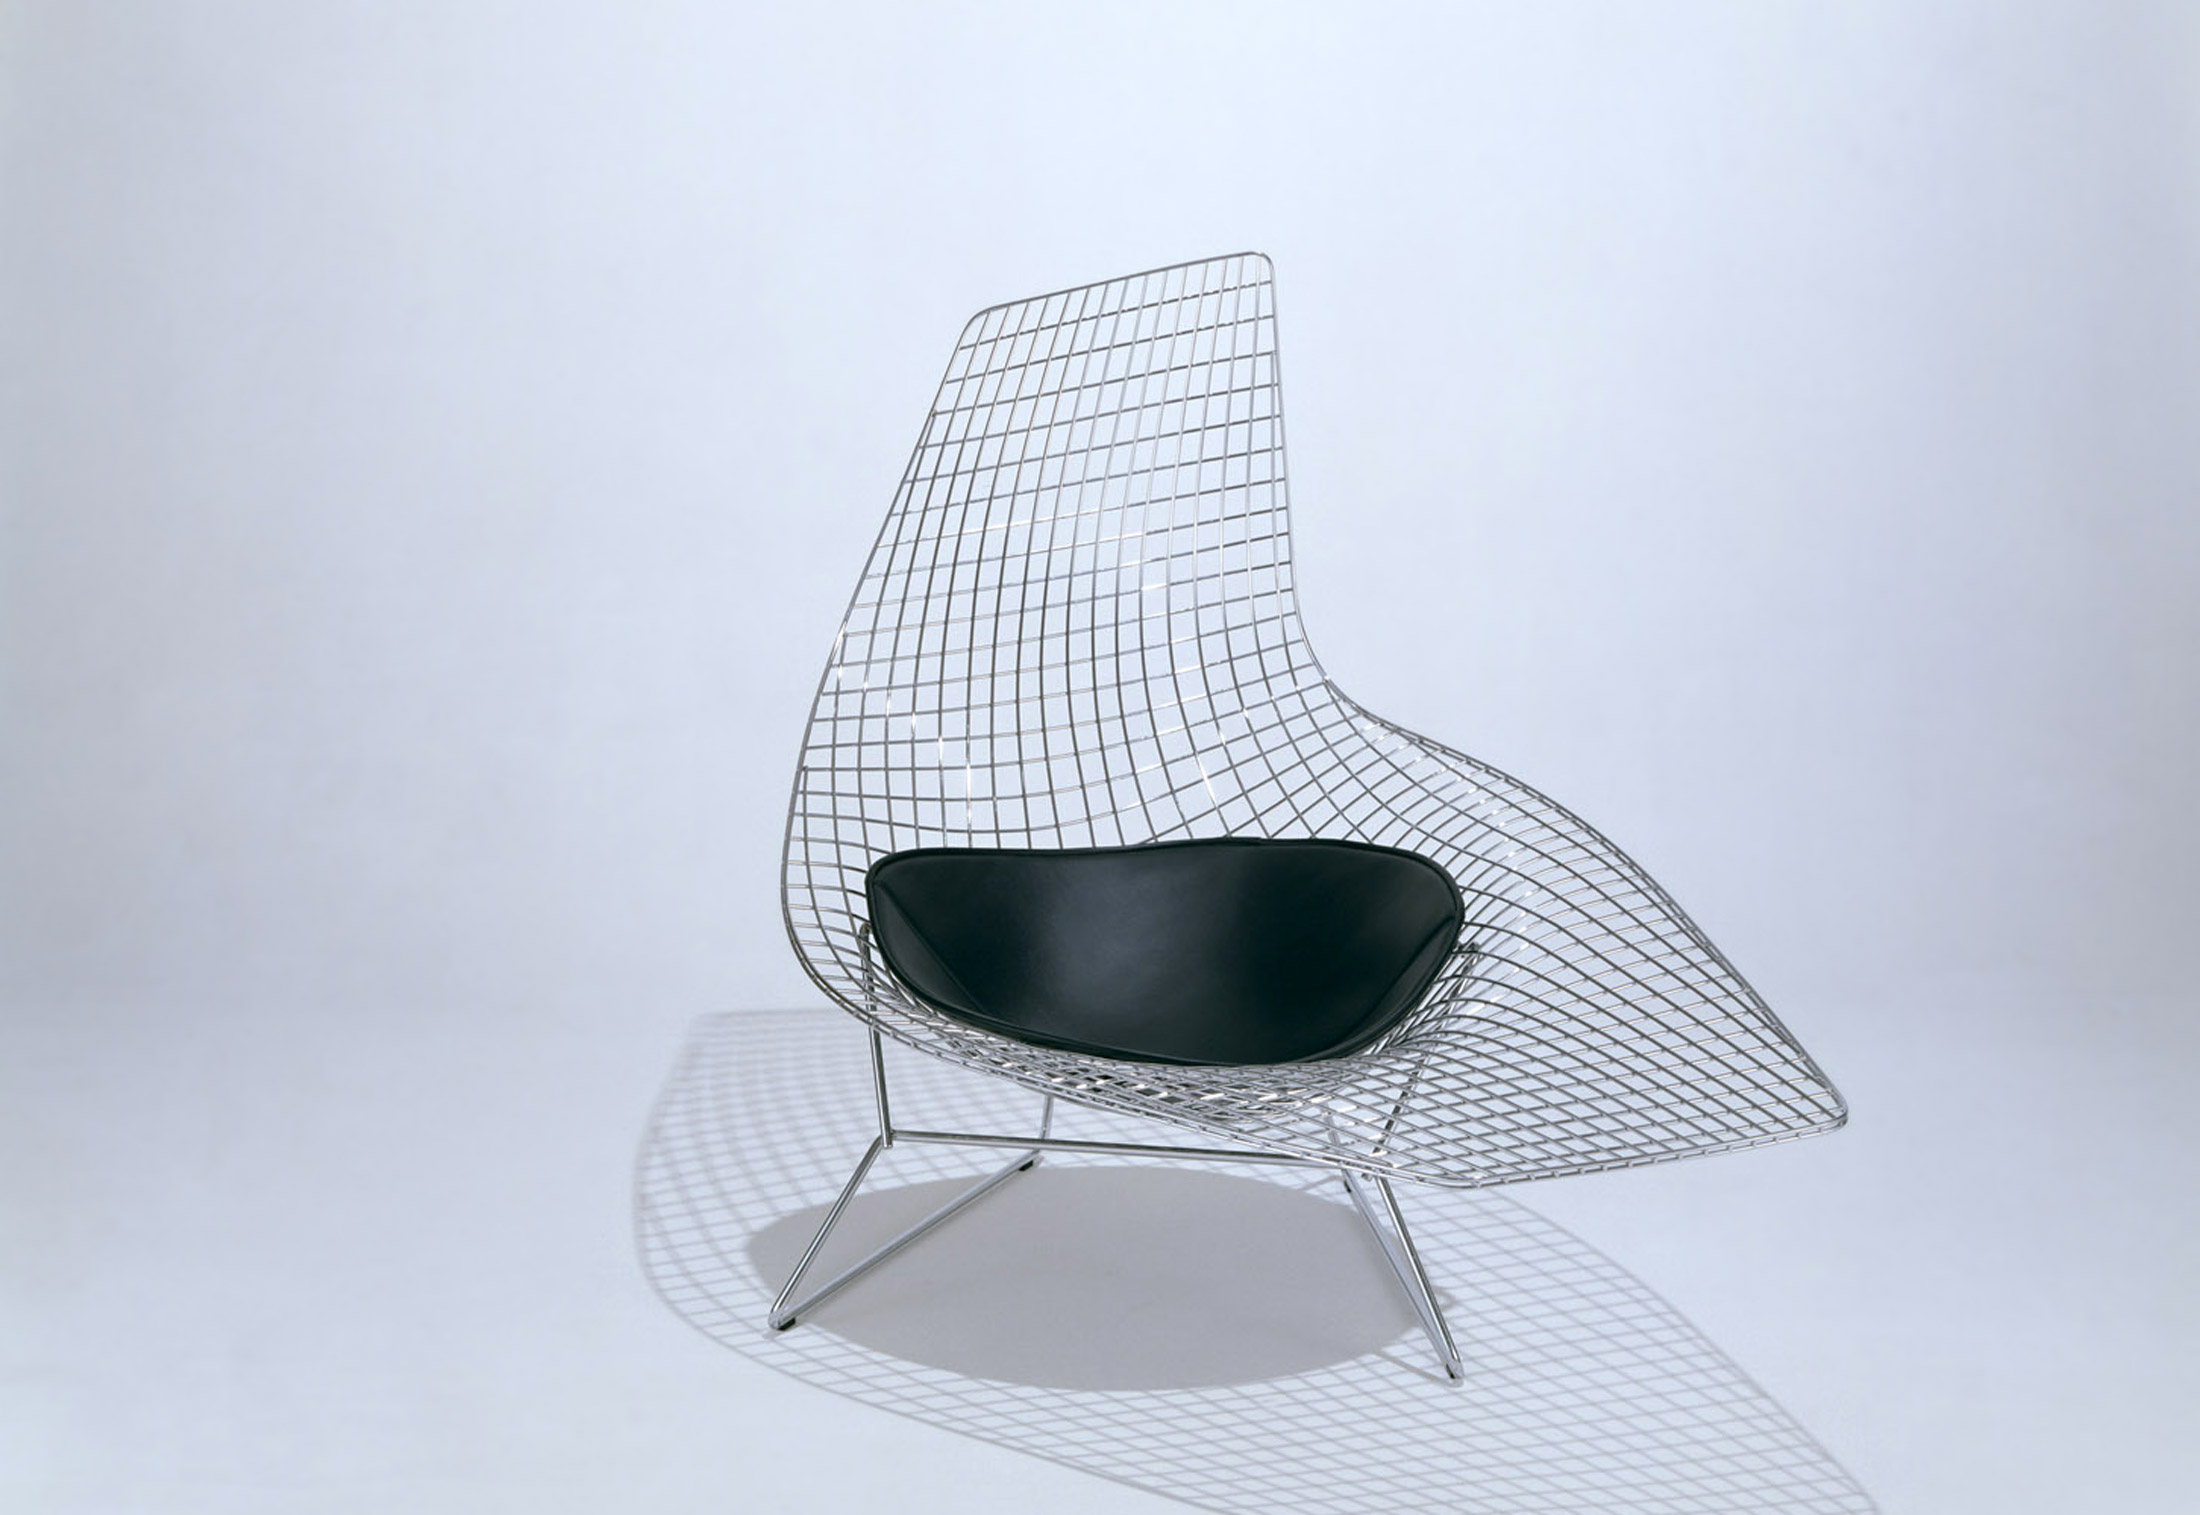 chaise diamond bertoia bertoia large diamond chair with full cover with chaise diamond bertoia. Black Bedroom Furniture Sets. Home Design Ideas